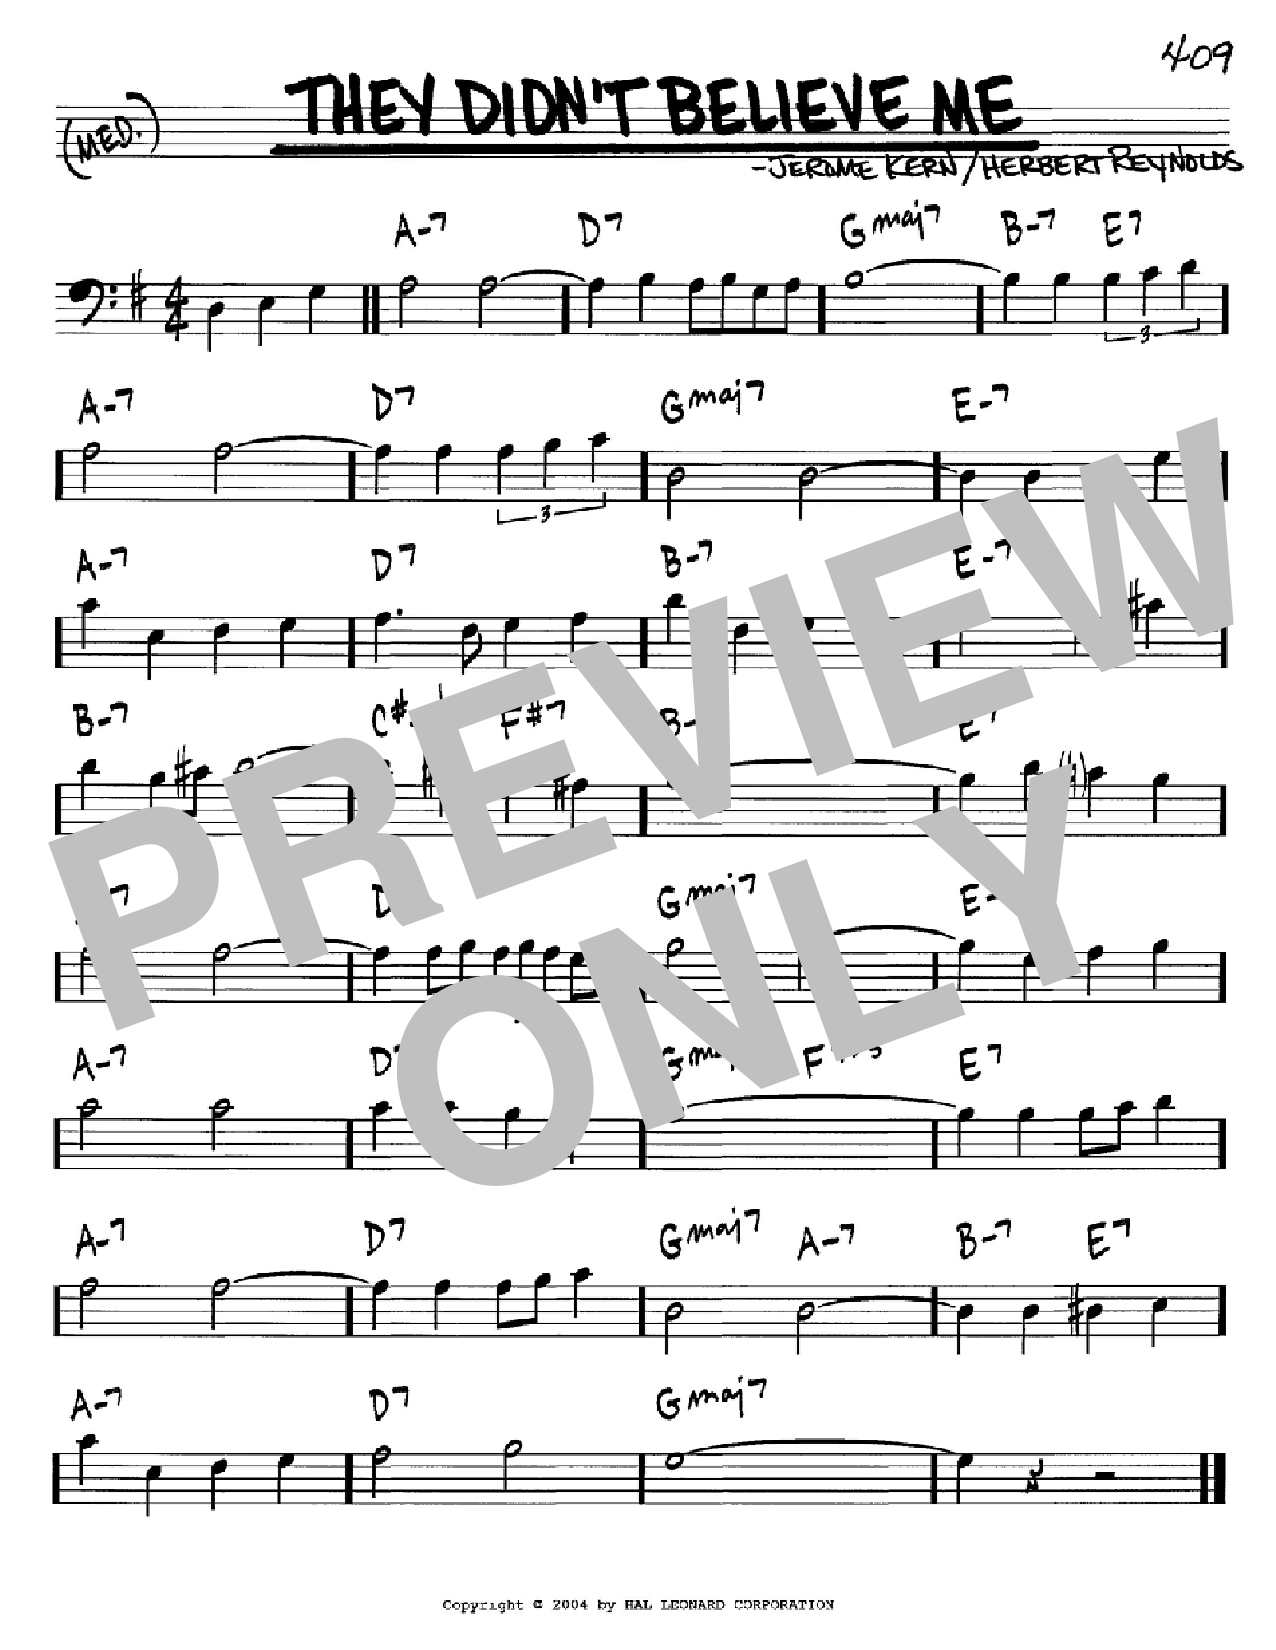 They Didn't Believe Me Sheet Music